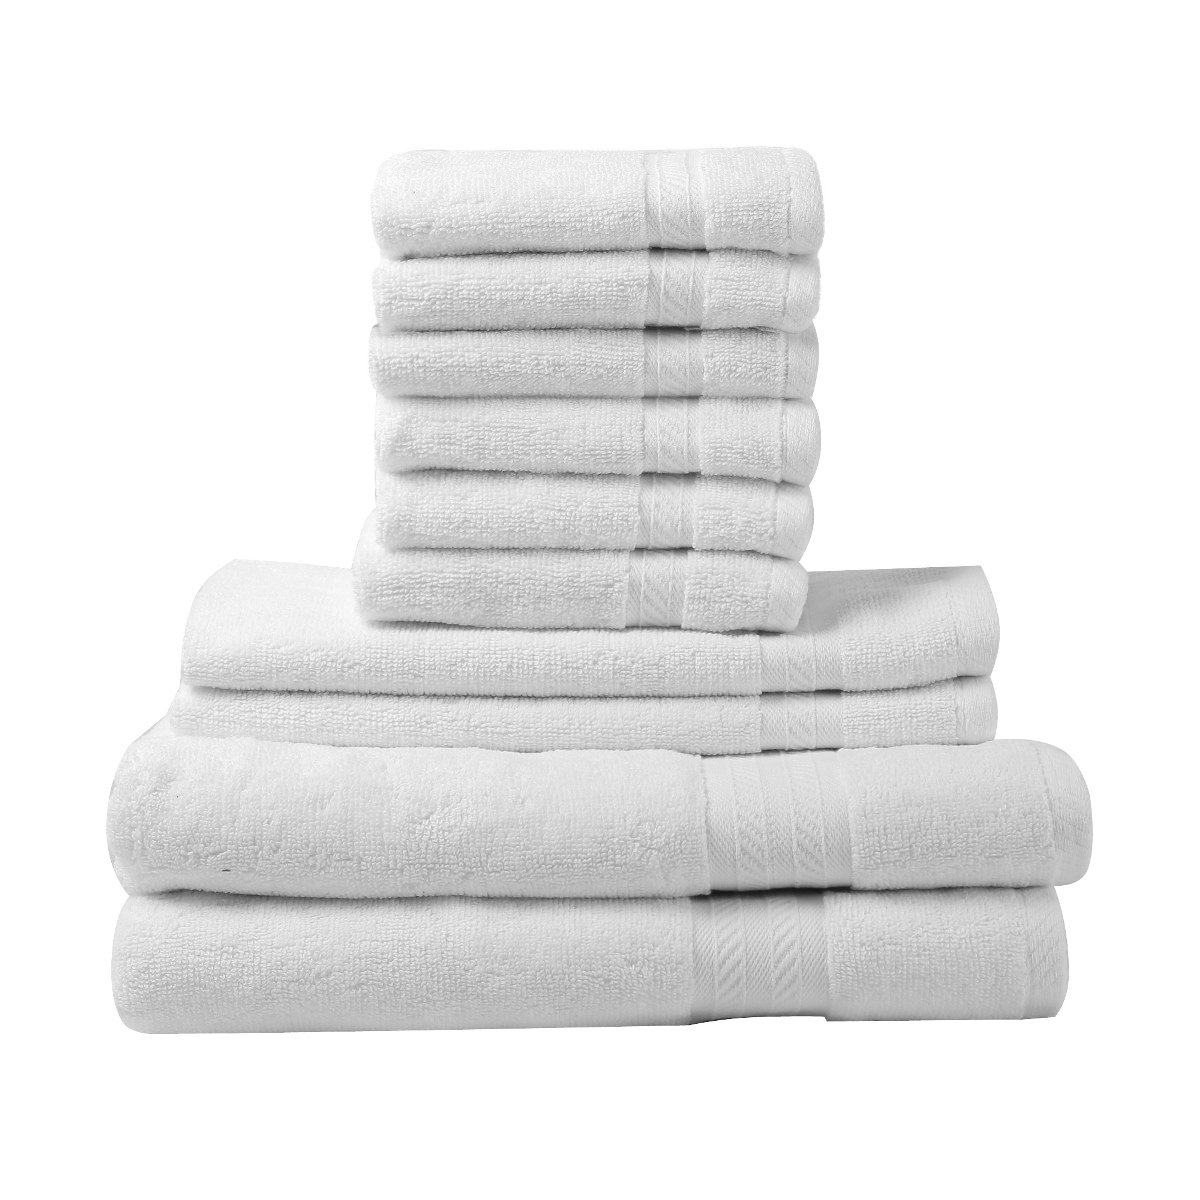 FreshFromLoom Premium Quality Ring Spun Cotton Towels Set, Super Soft, Plush, Machine Washable and Highly Absorbent Towels, Pack of 10 (2 Bath Towels, 2 Hand Towels, 6 Wash Clothes), White Fresh From Loom